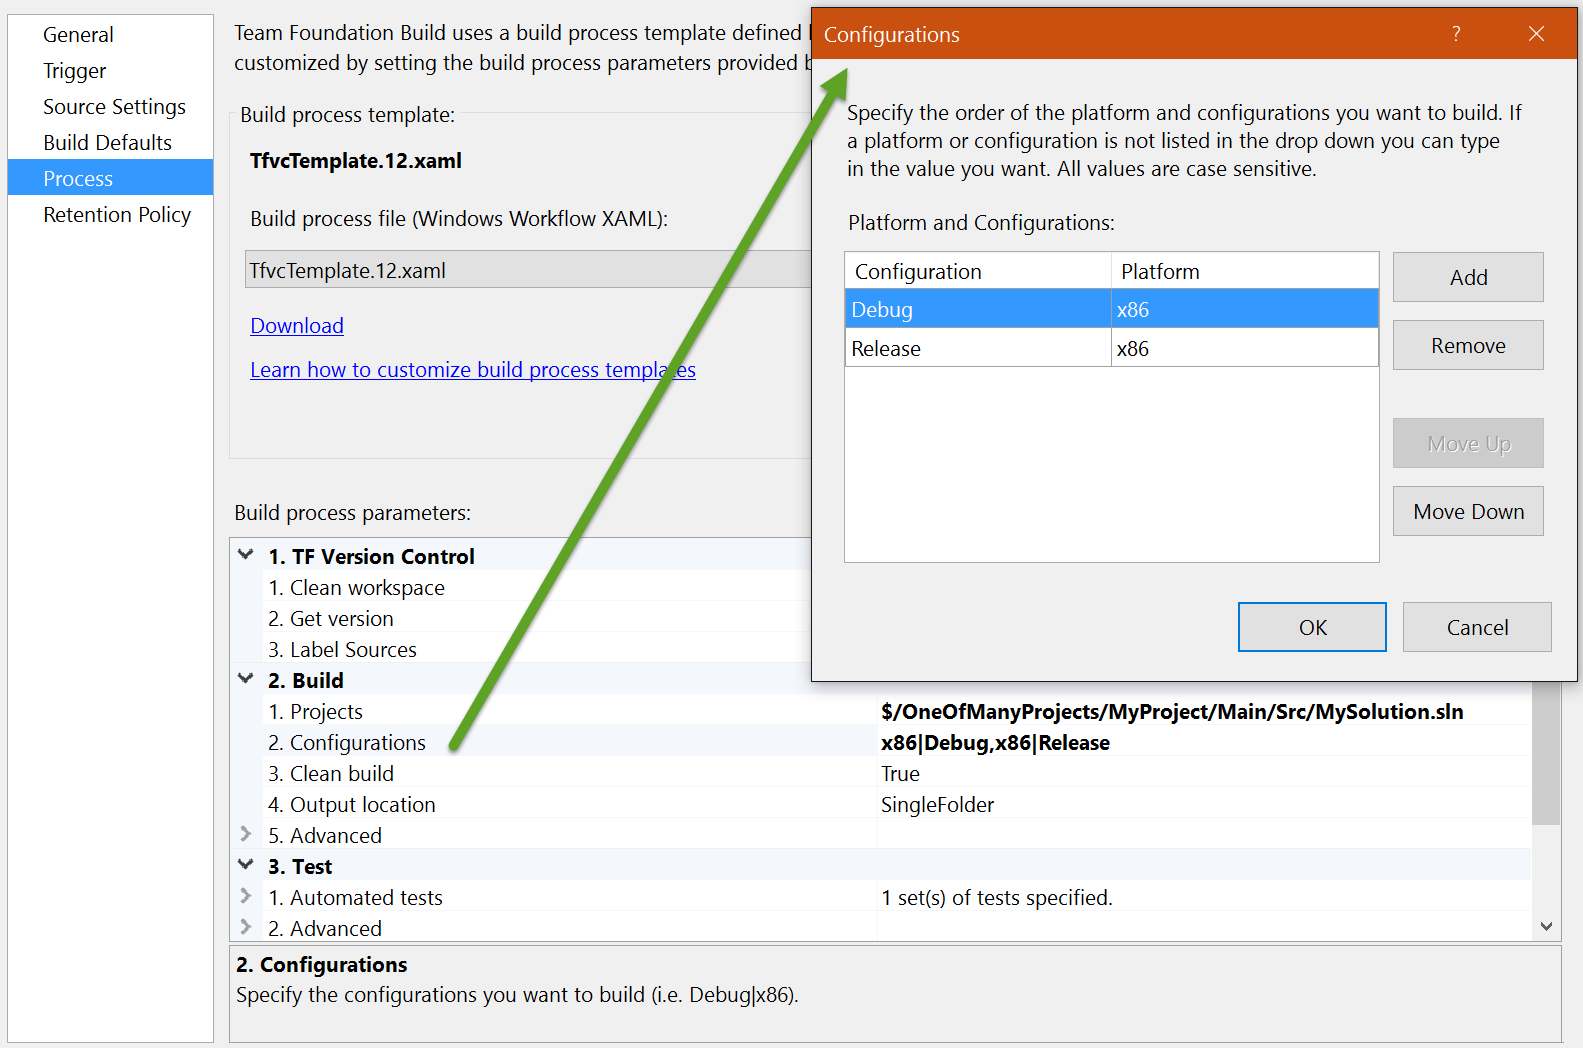 Building multiple configurations and/or platforms in Build 2015